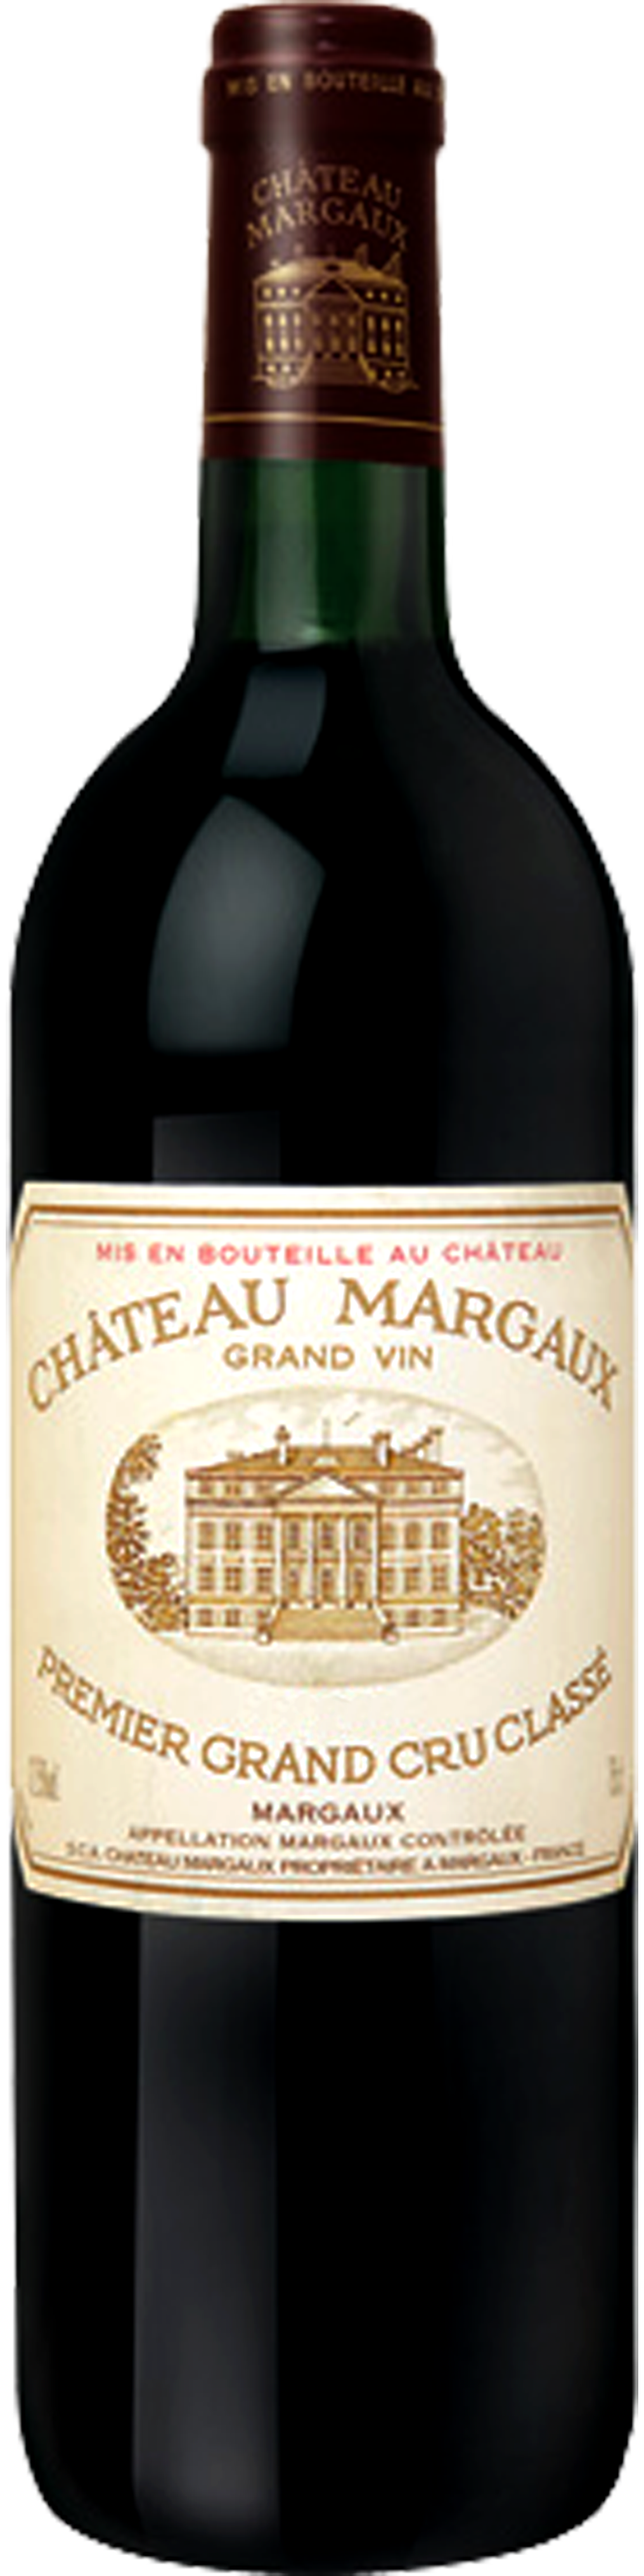 Image of product Château Margaux, 1er Cru Margaux